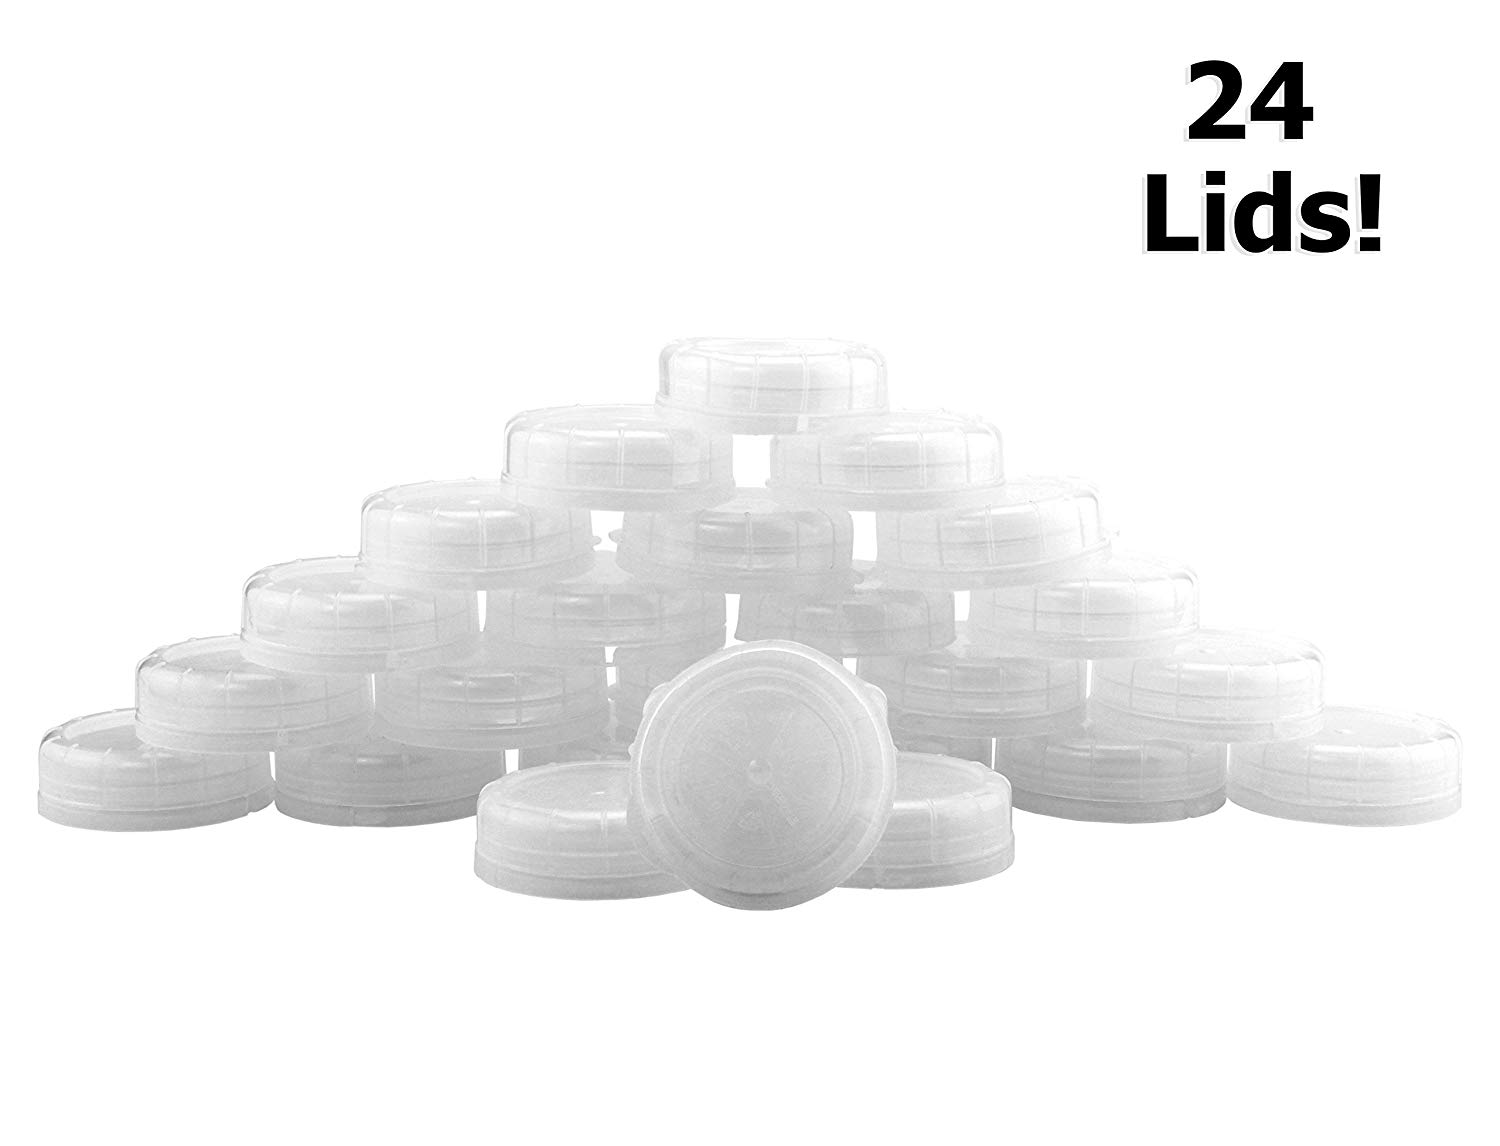 48mm Glass Milk Bottle Lids (24-Pack), Clear Snap-On Replacement Caps for Pint, Quart, Liter & Two Quart Milk Bottles